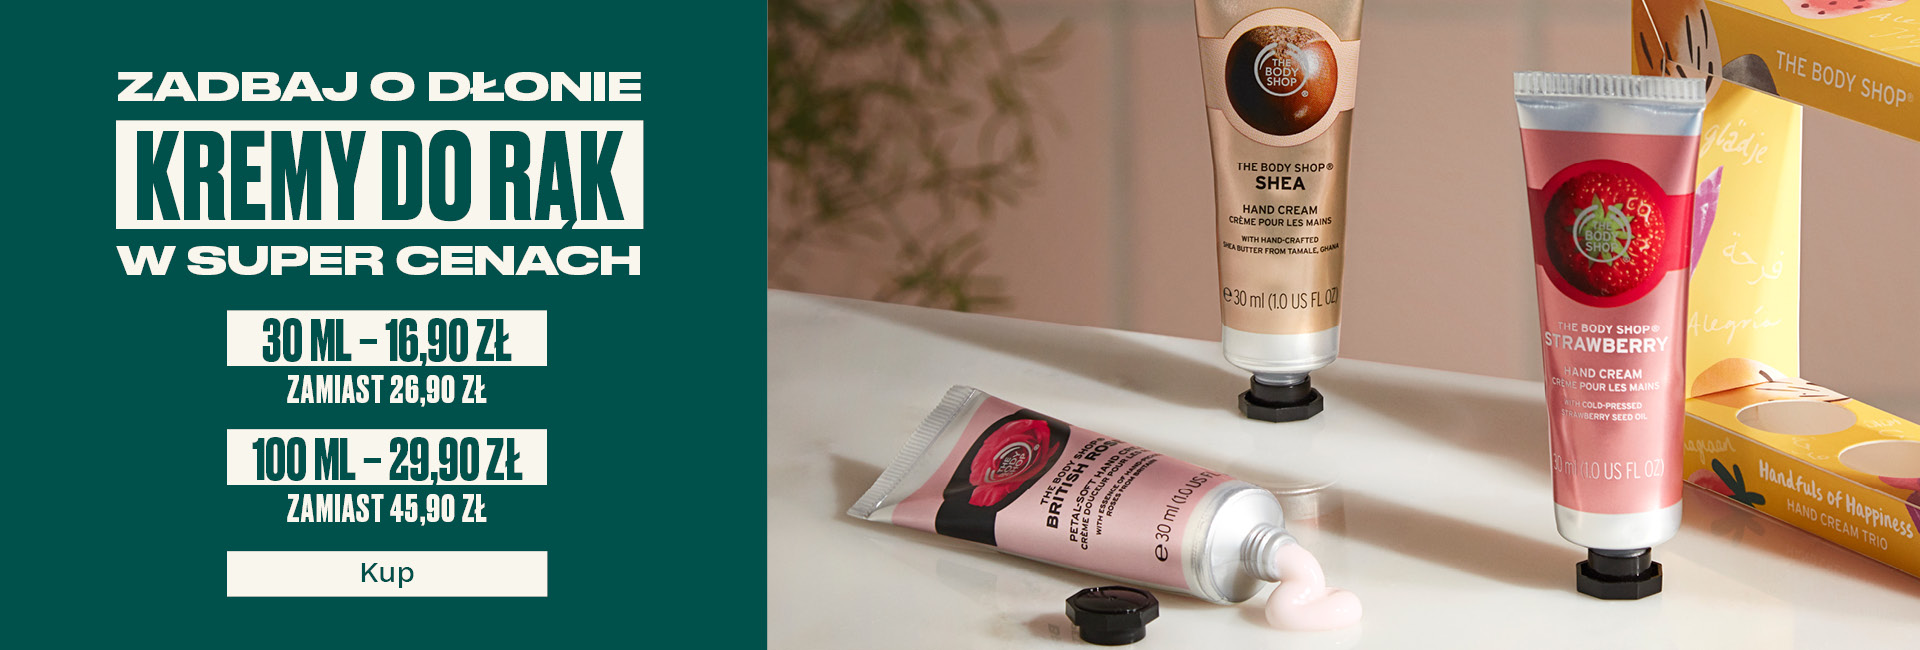 The Body Shop: zadbaj o cerę z maskami EXPERT